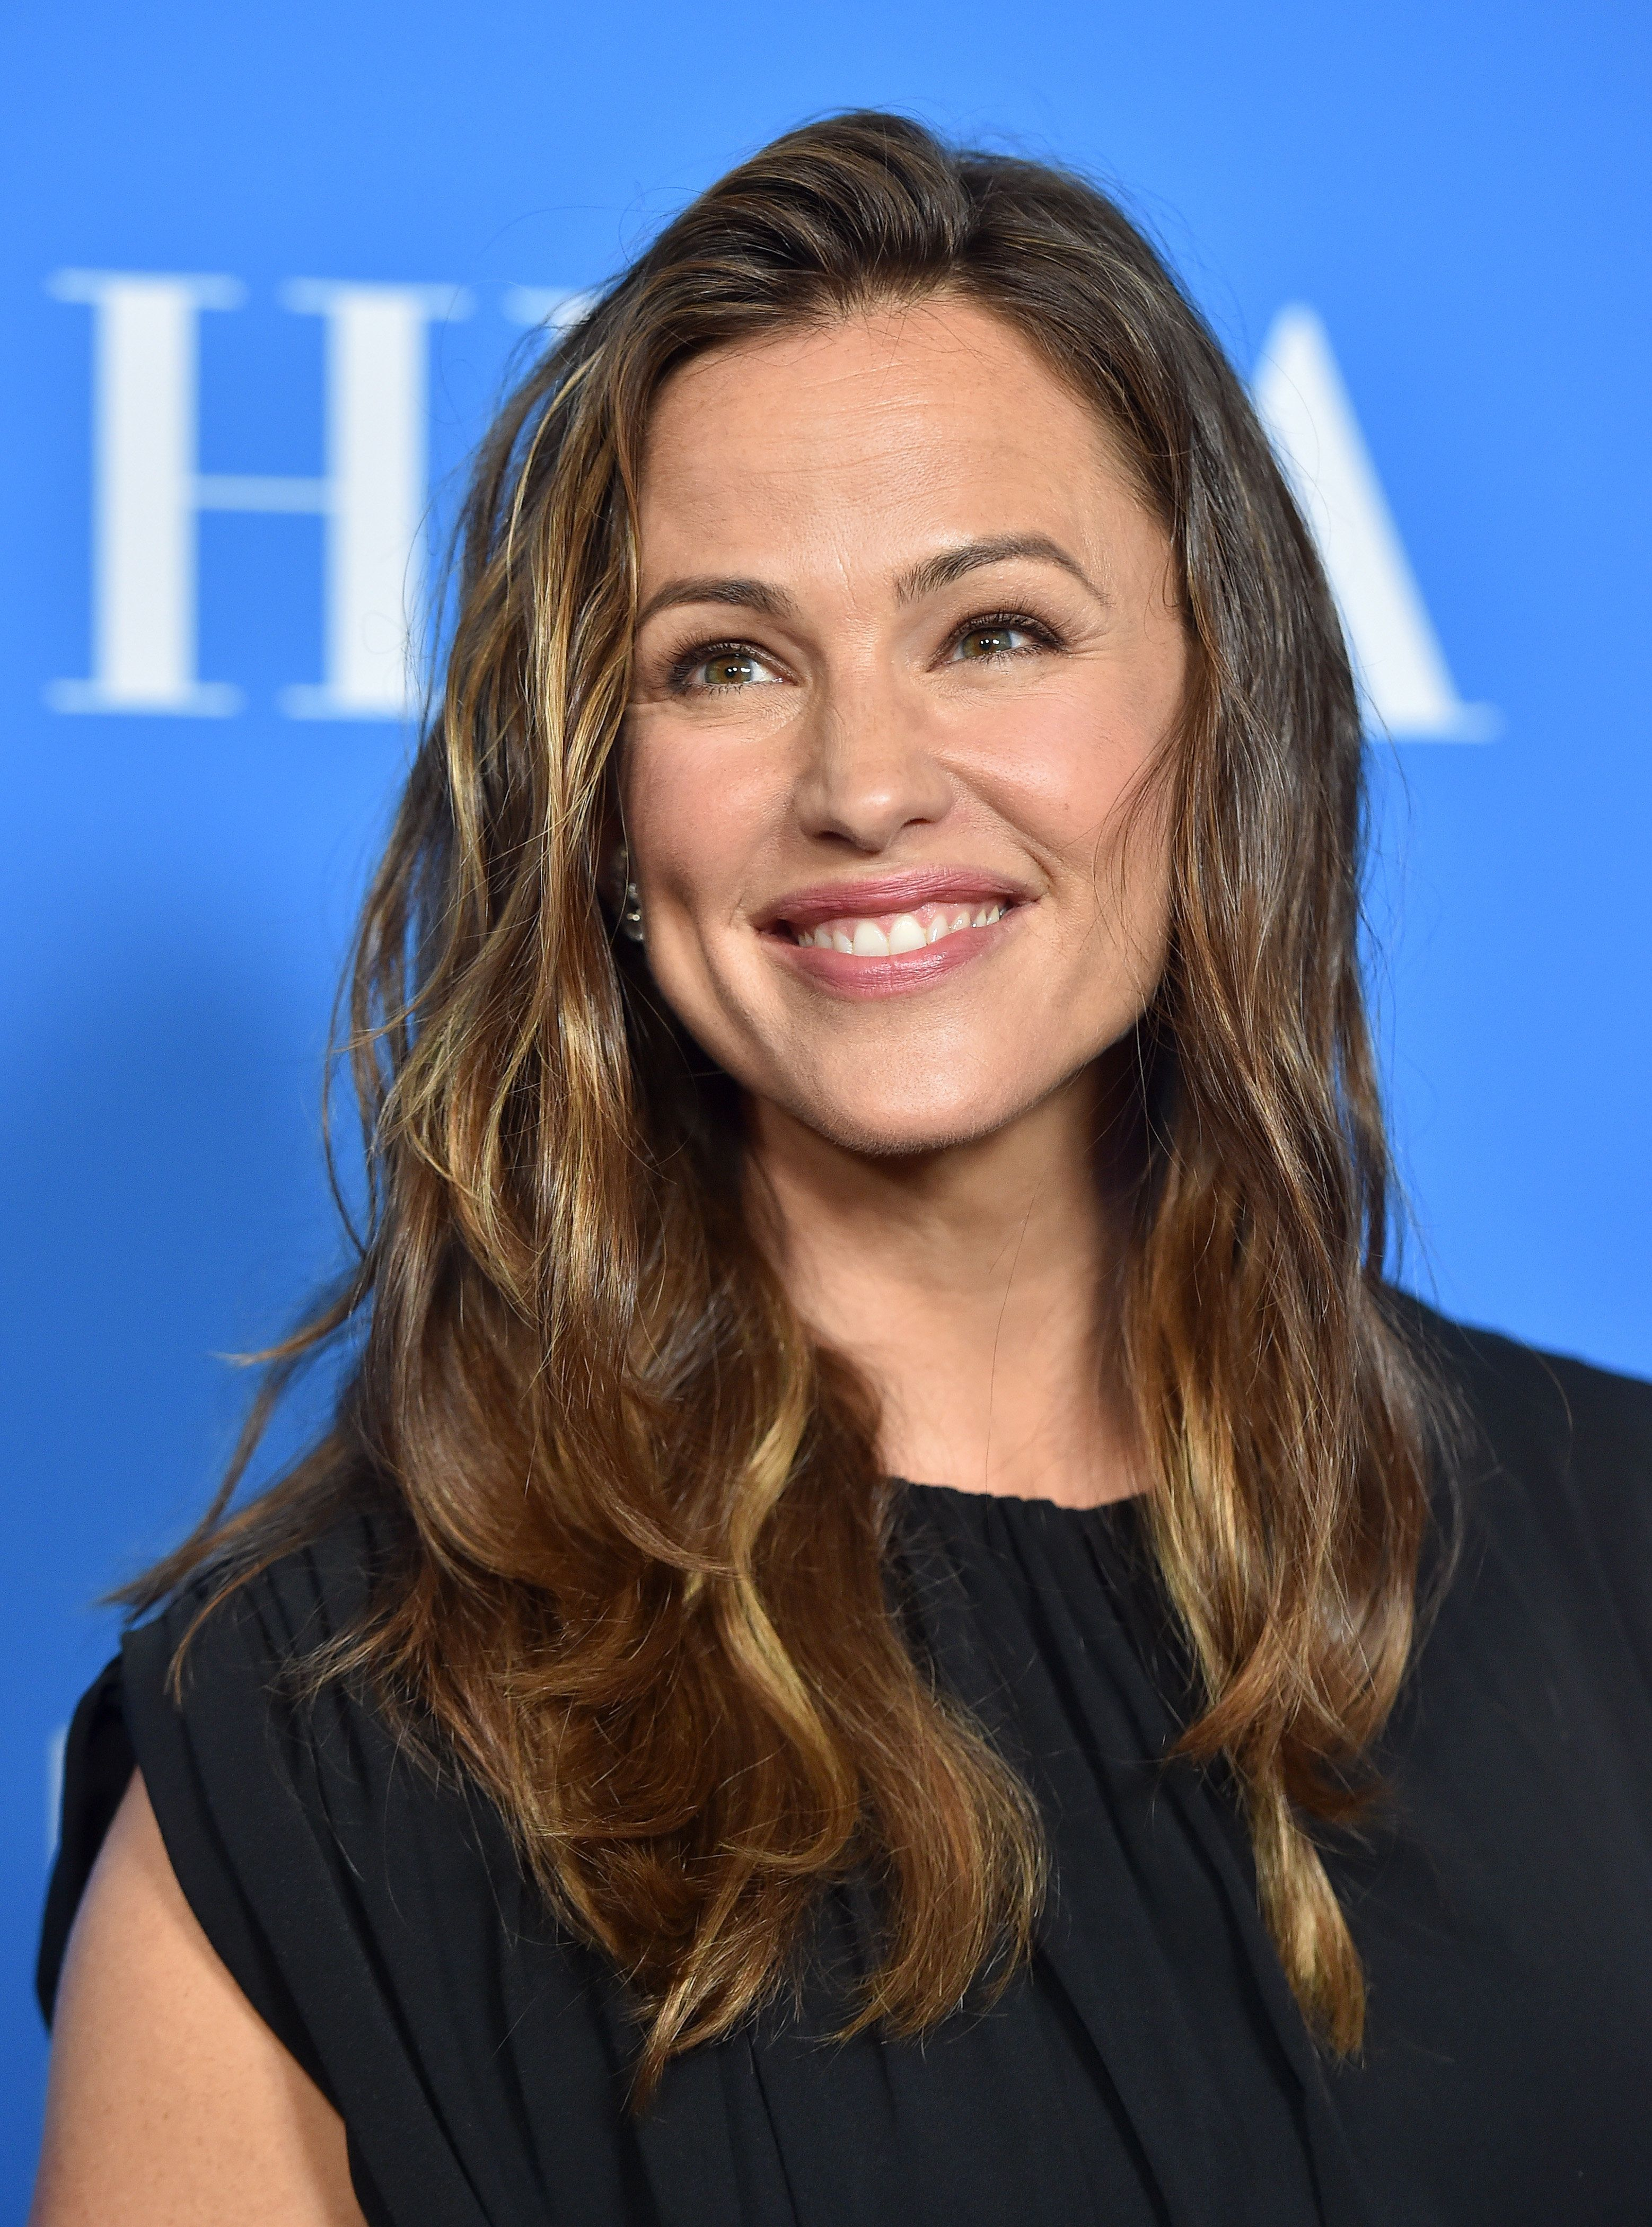 Jennifer Garner arrives at the Hollywood Foreign Press Association's Grants Banquet in August. Netflix has picked up on the i